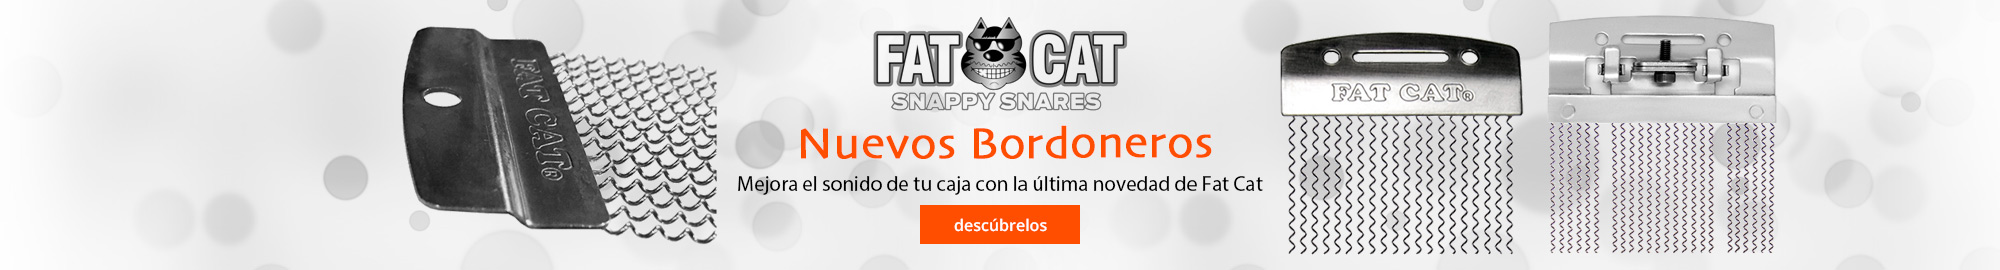 Nuevos bordoneros Fat Cat